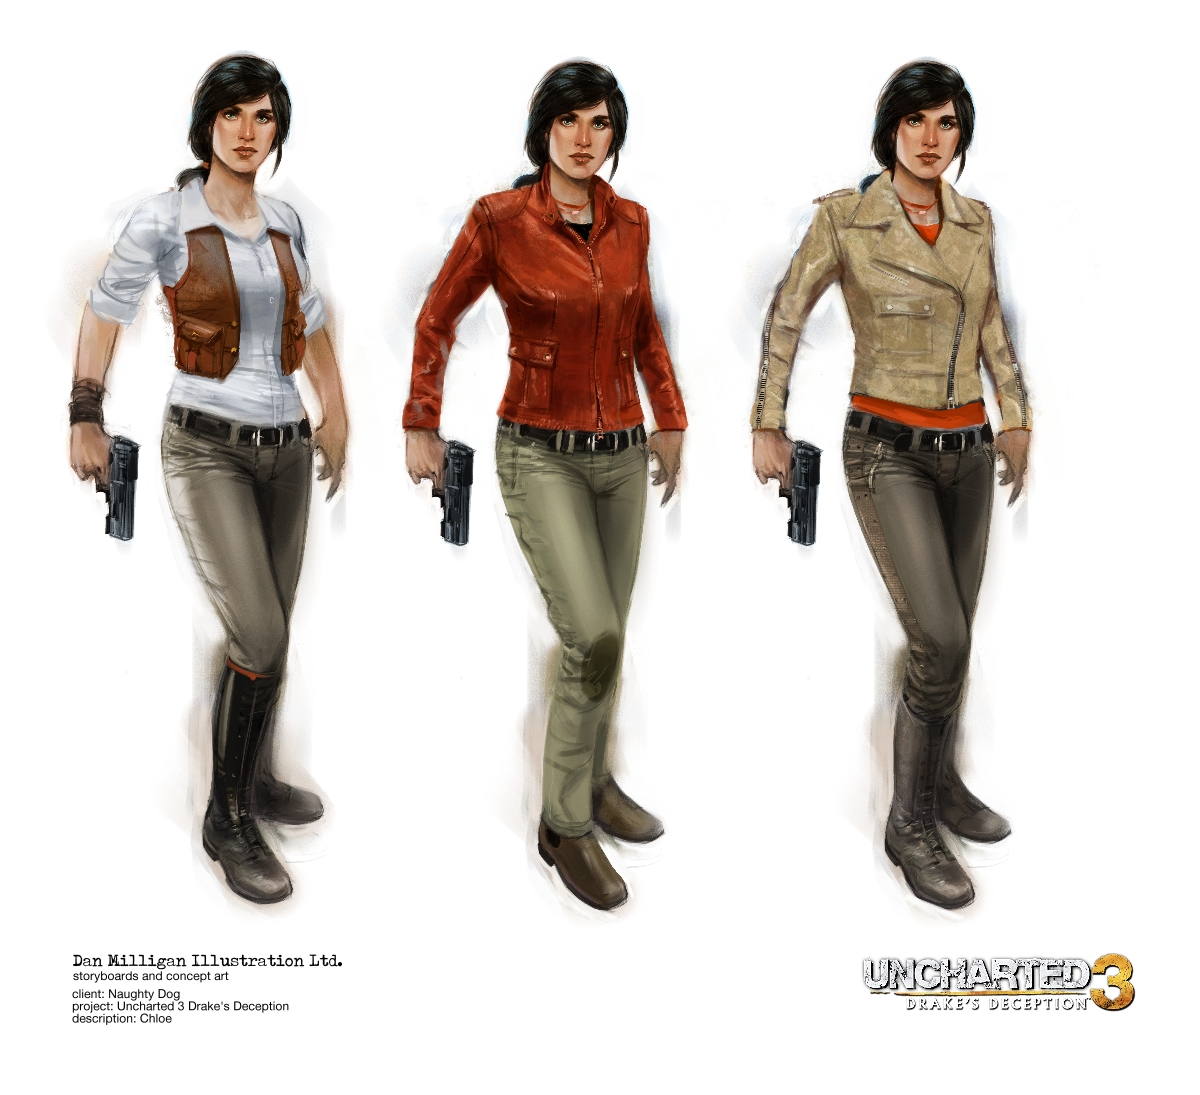 Uncharted 3 Chloe ideations